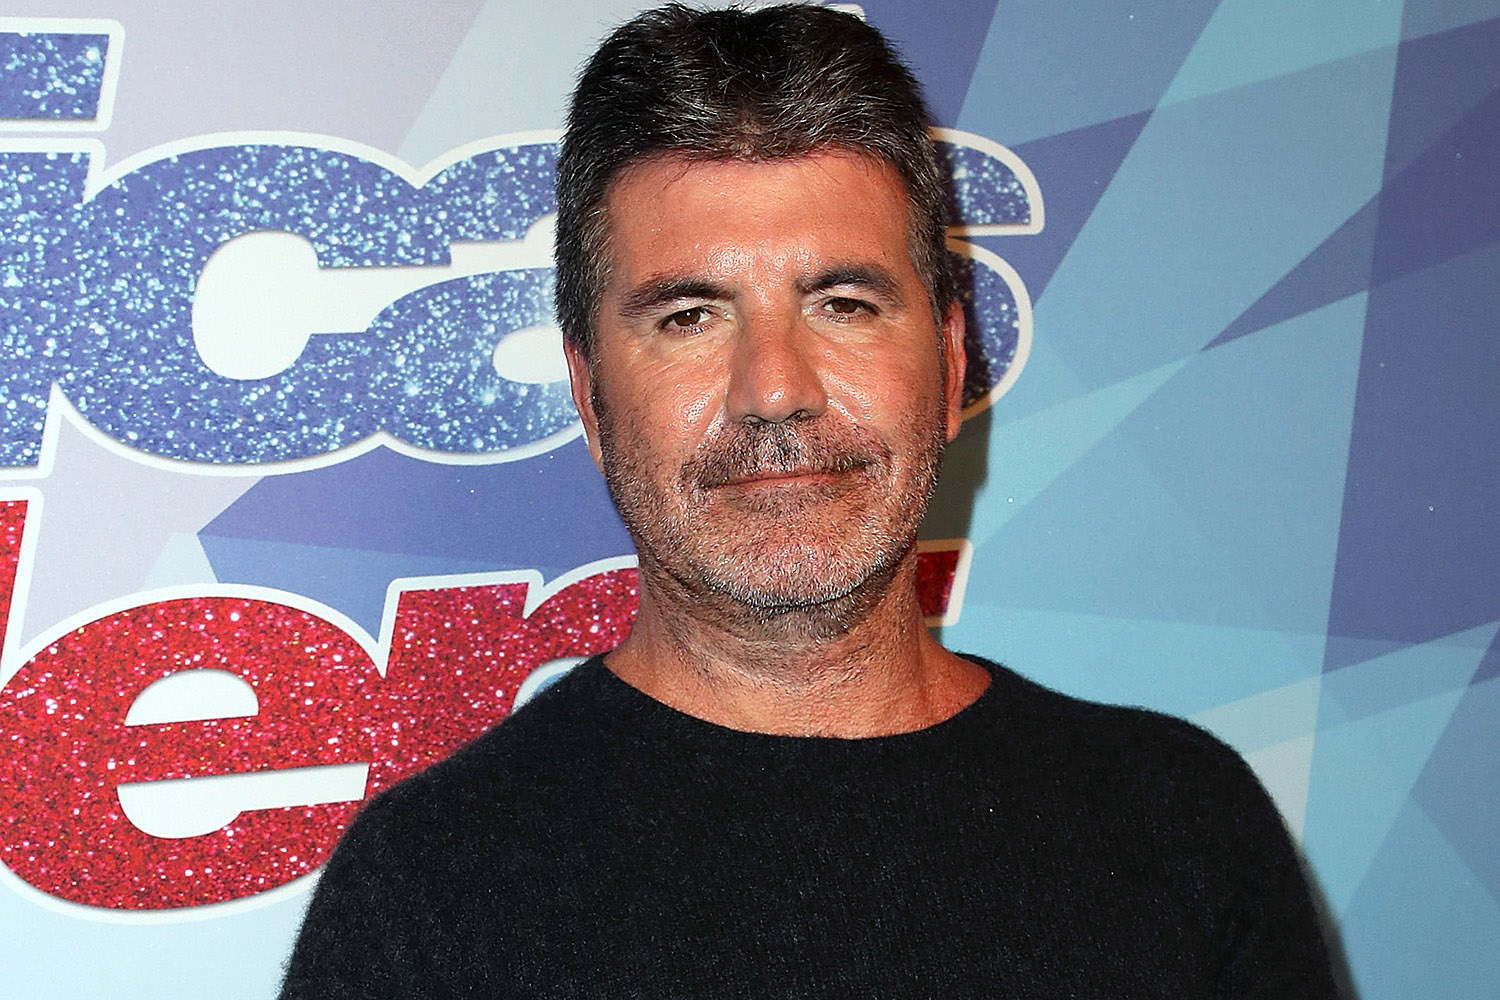 Simon Cowell Reveals Health Condition That Caused His Fall Page Six